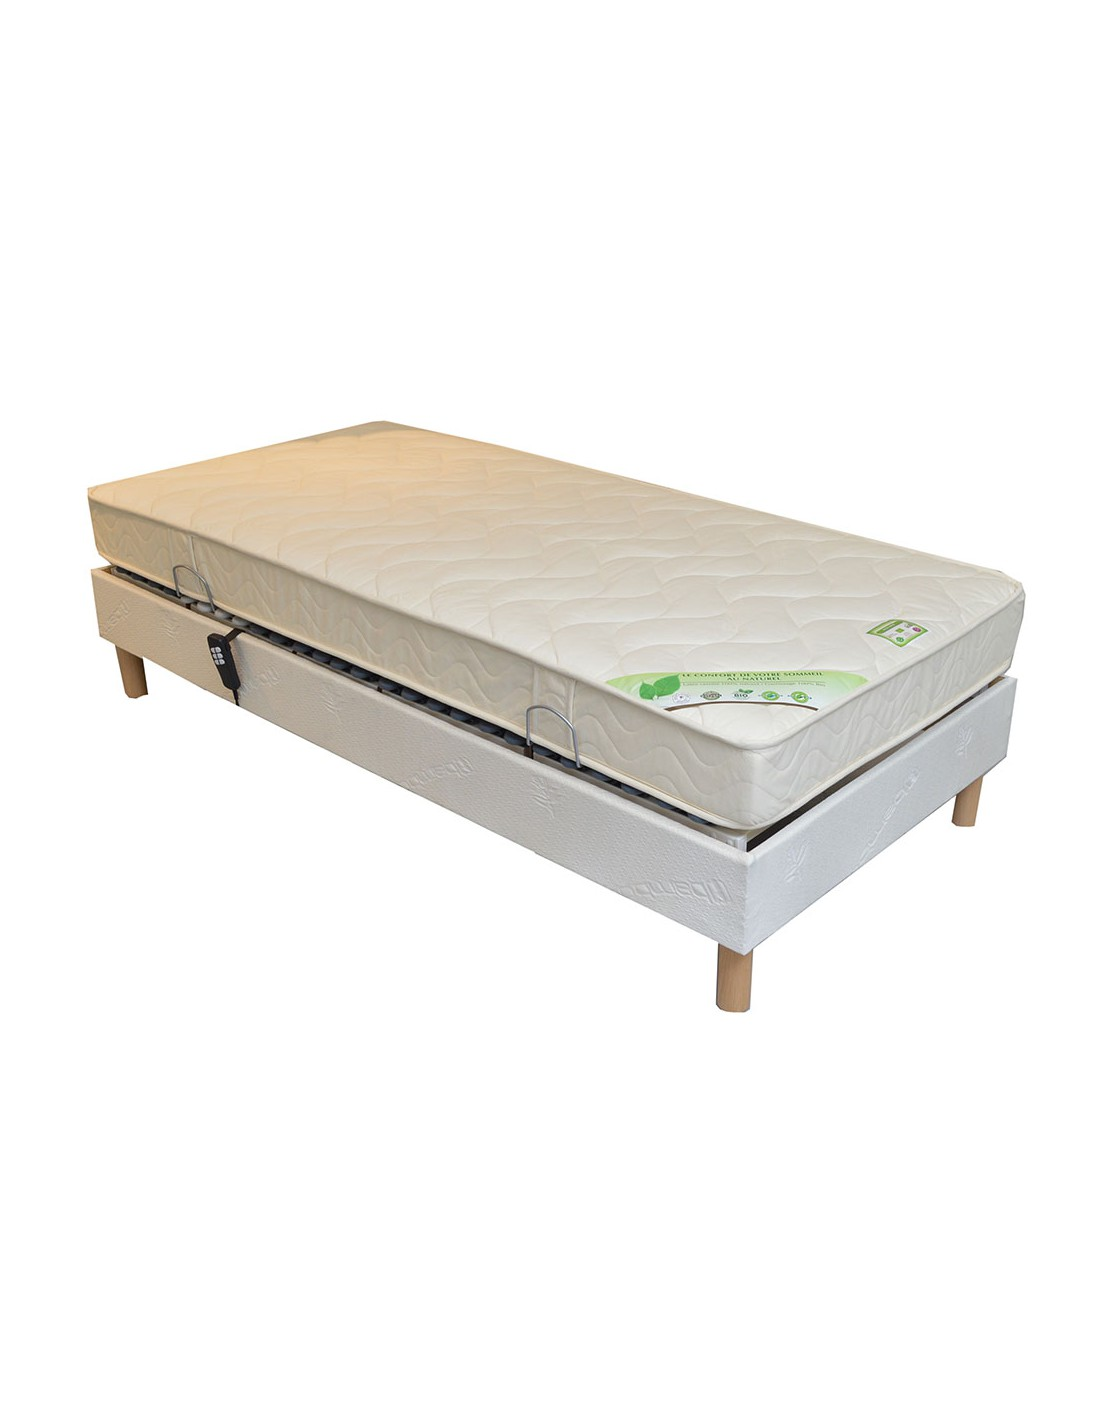 28 luxe matelas latex zat3 meuble de cuisine. Black Bedroom Furniture Sets. Home Design Ideas